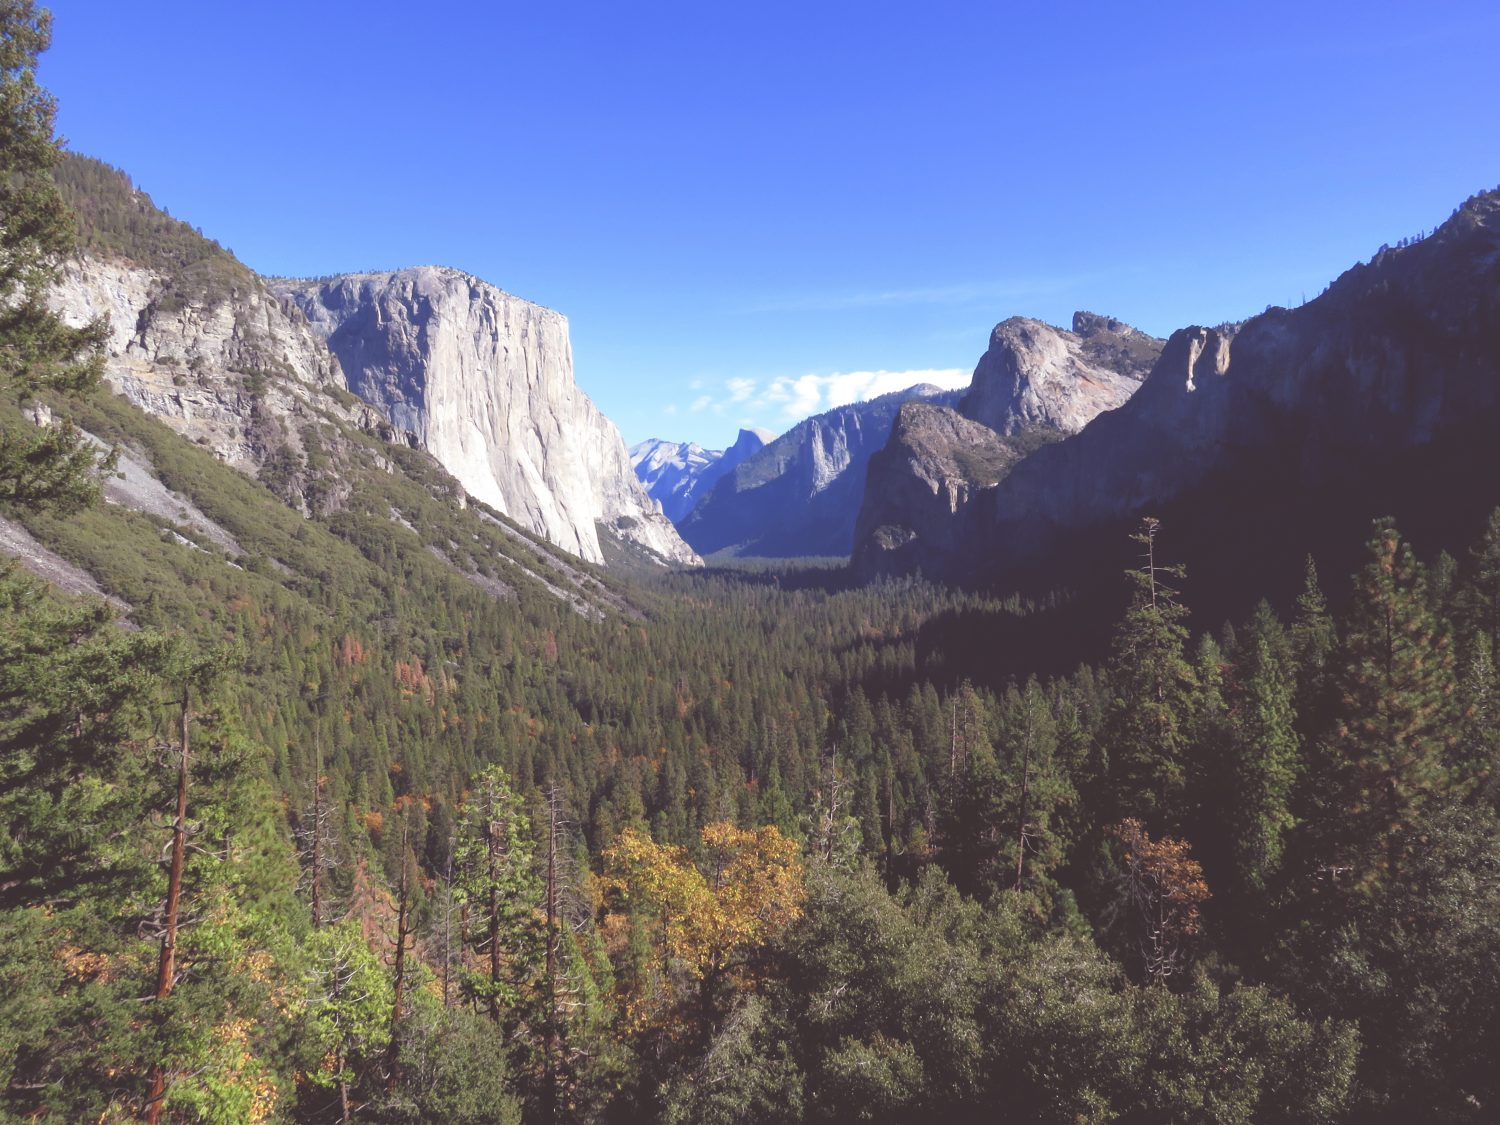 Top 10 Most Beautiful Valleys in the World - Yosemite Valley. Read the full guide.